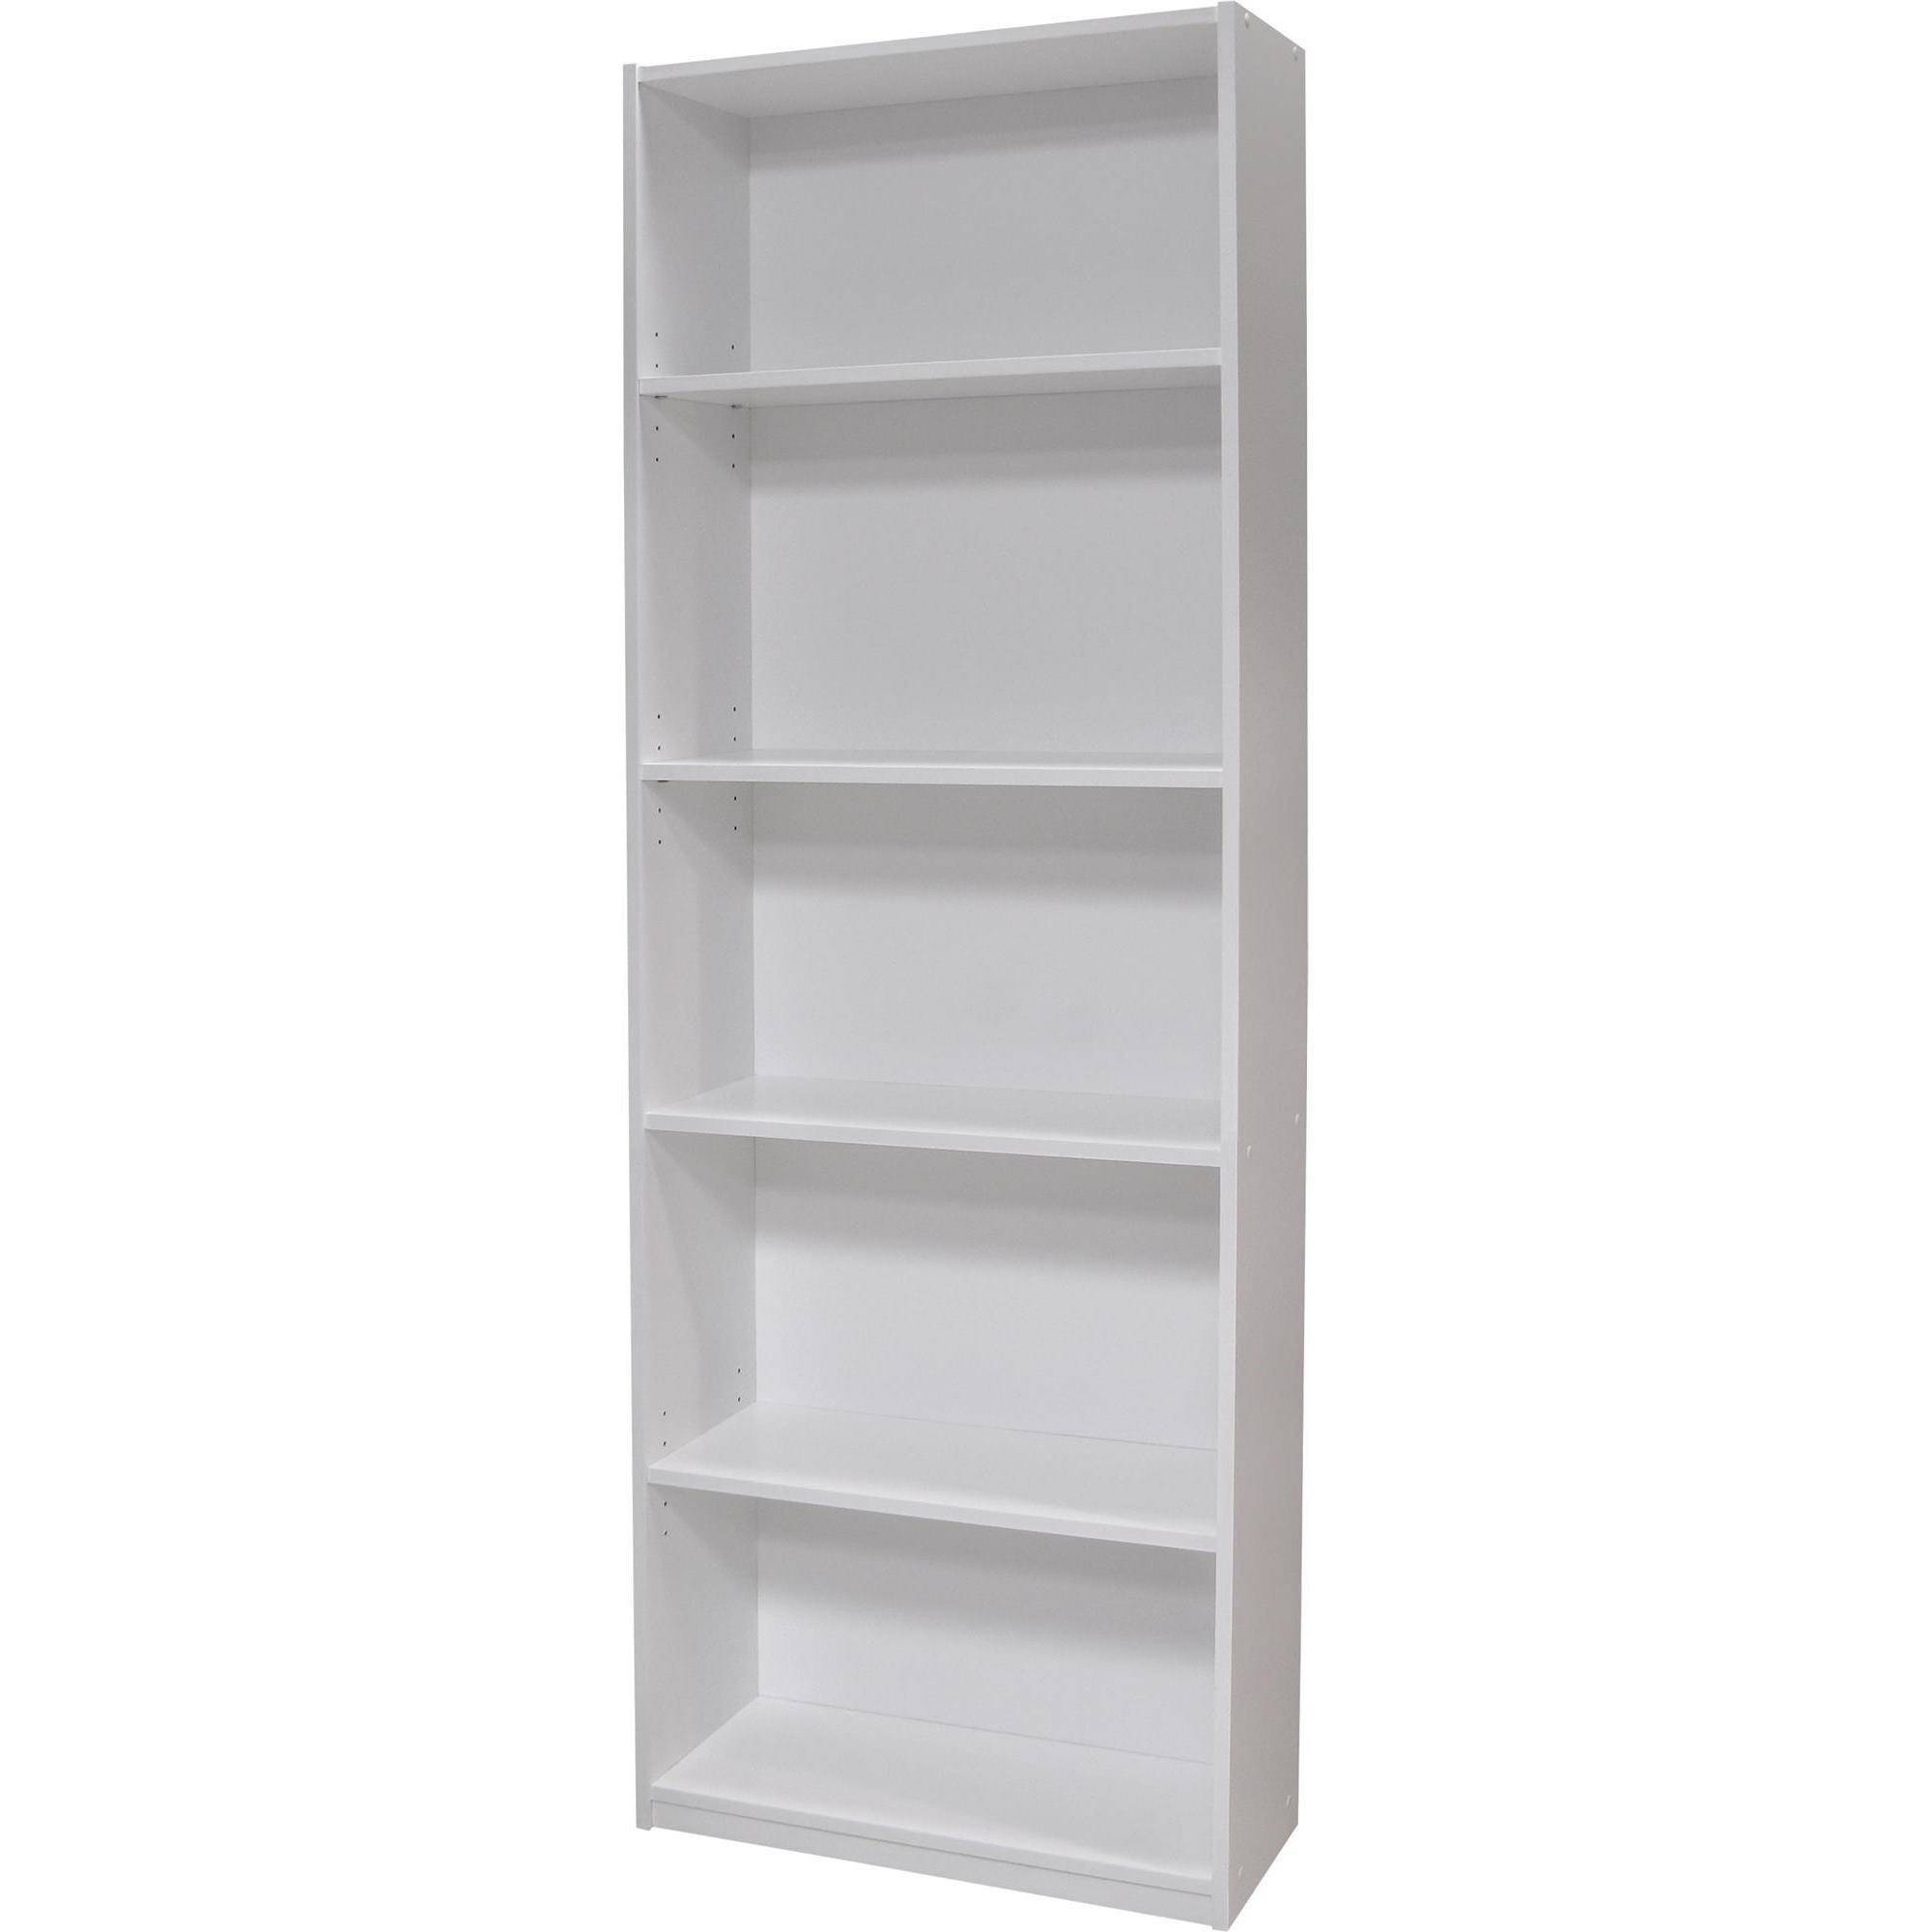 Current Ameriwood 5 Shelf Bookcases, Set Of 2 (Mix And Match) – Walmart Inside White Bookcases (View 5 of 15)